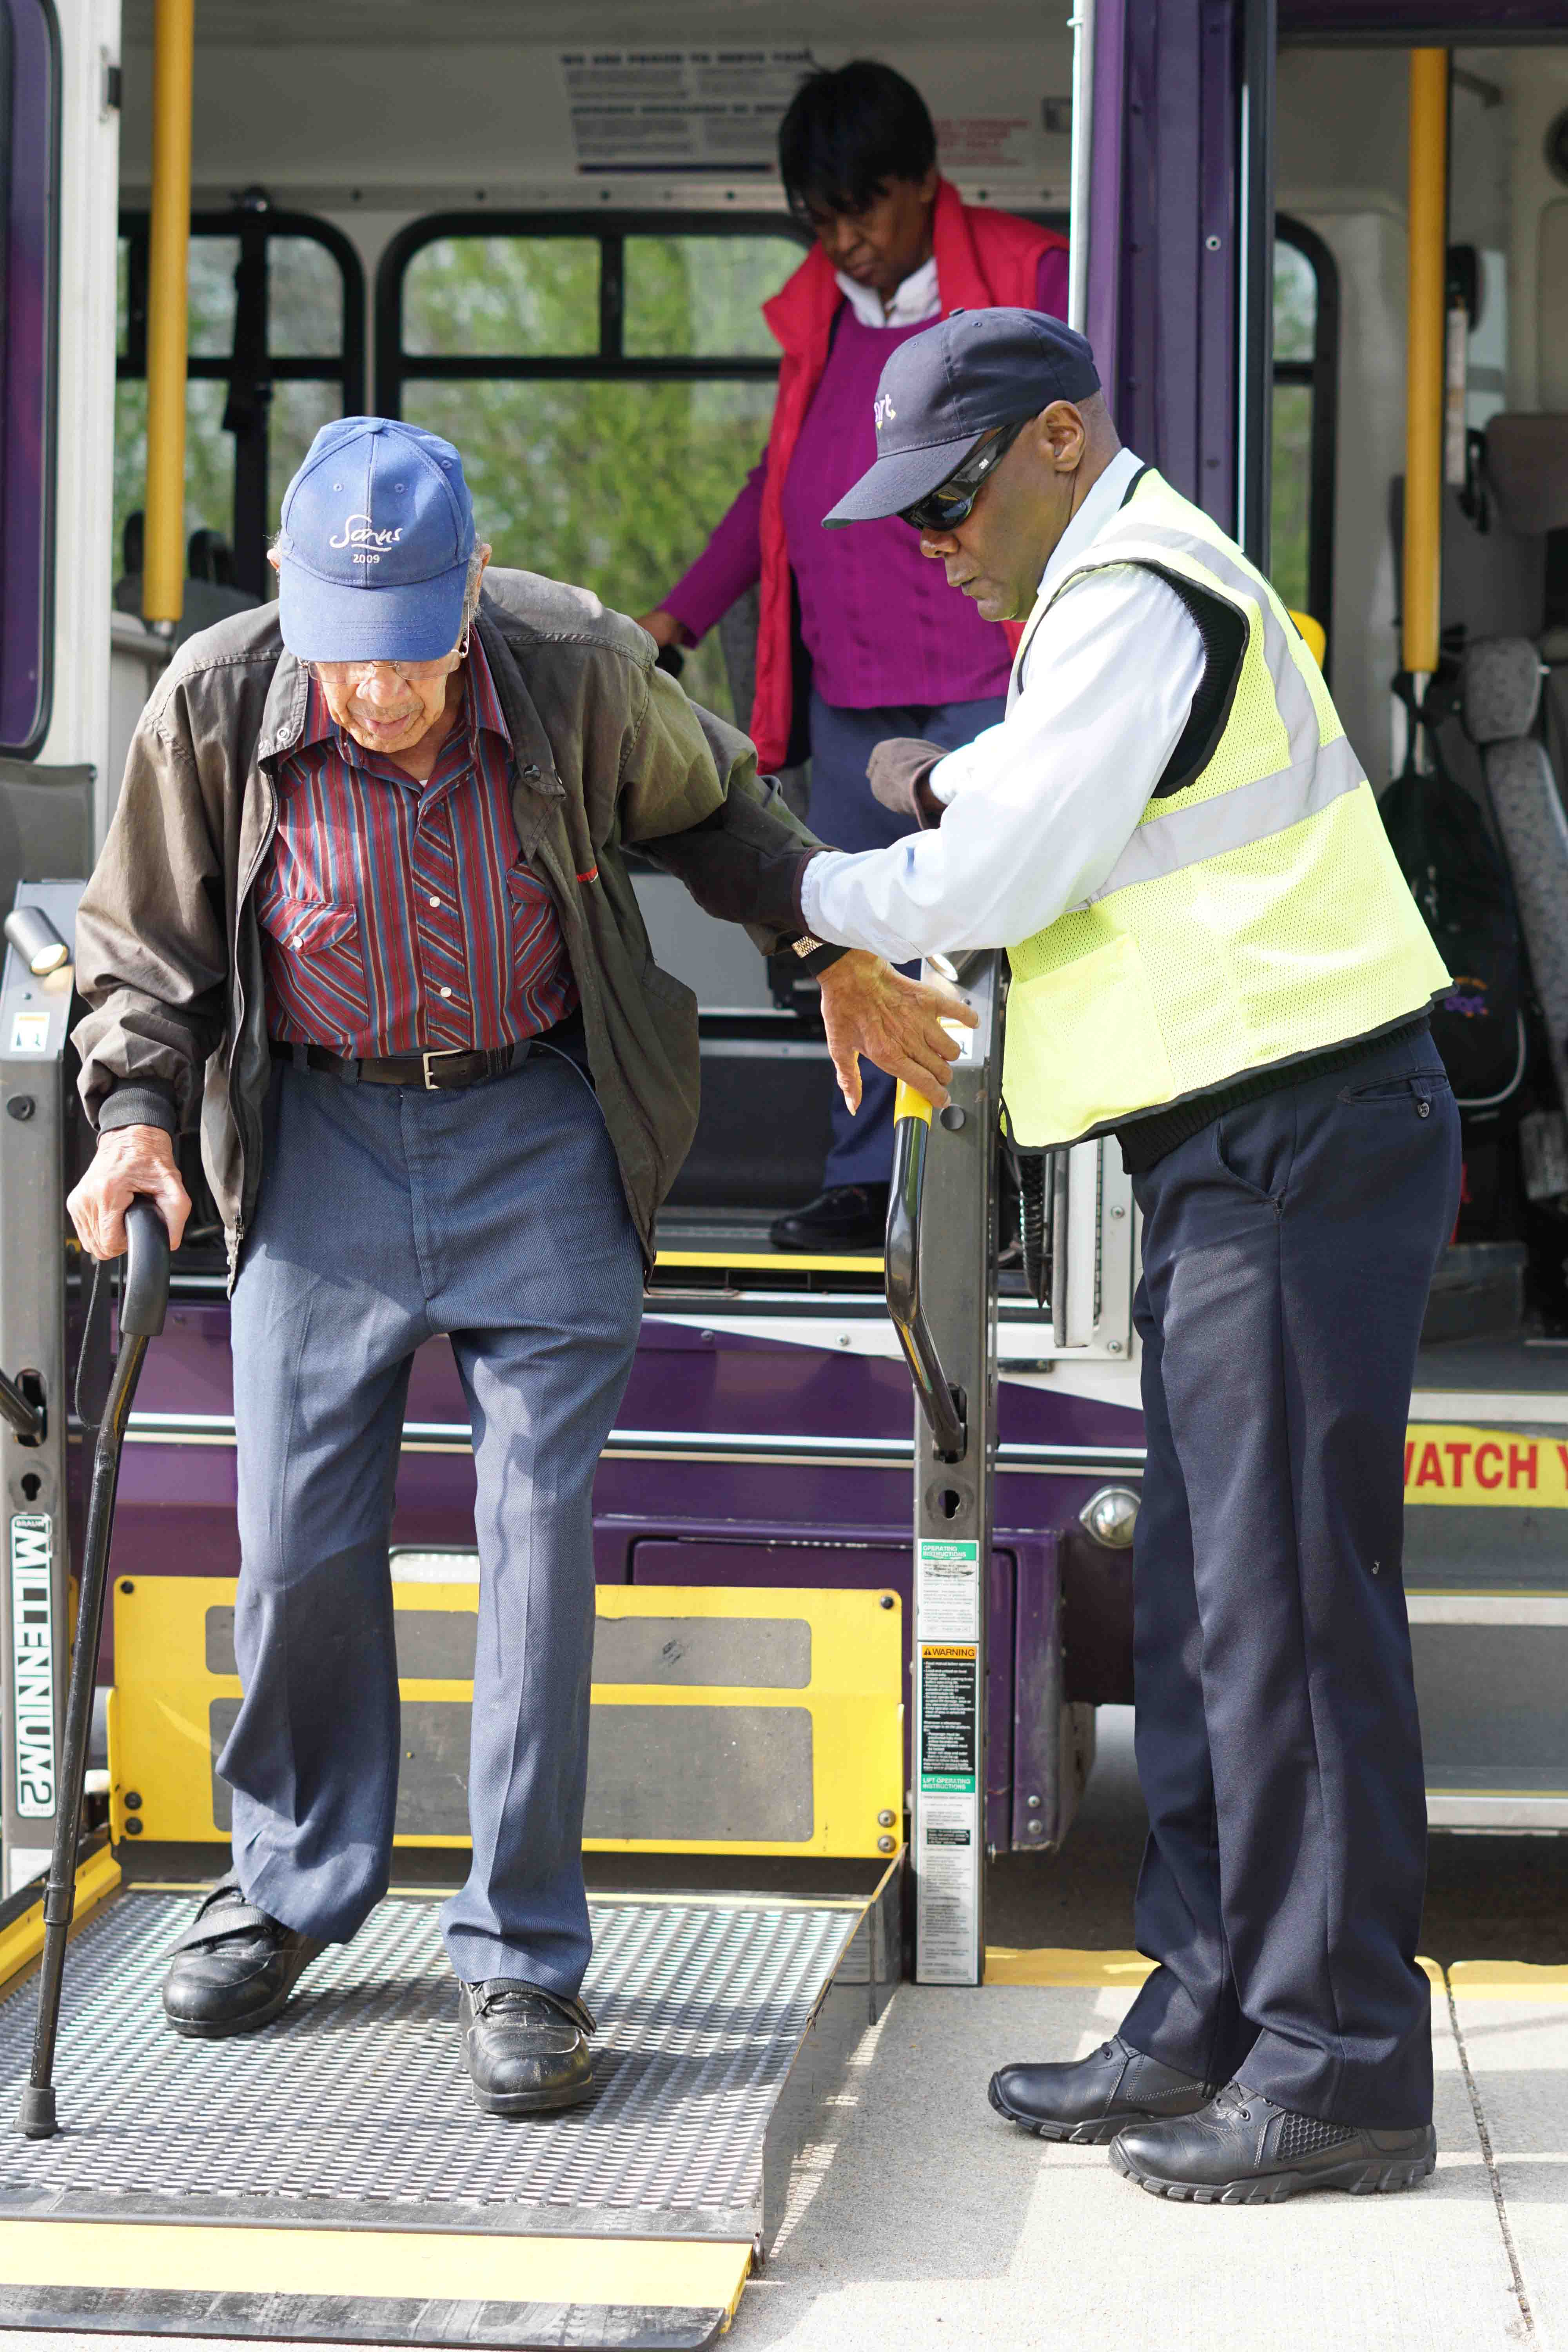 DART bus operator helps a man with a cane exit a Paratransit bus.